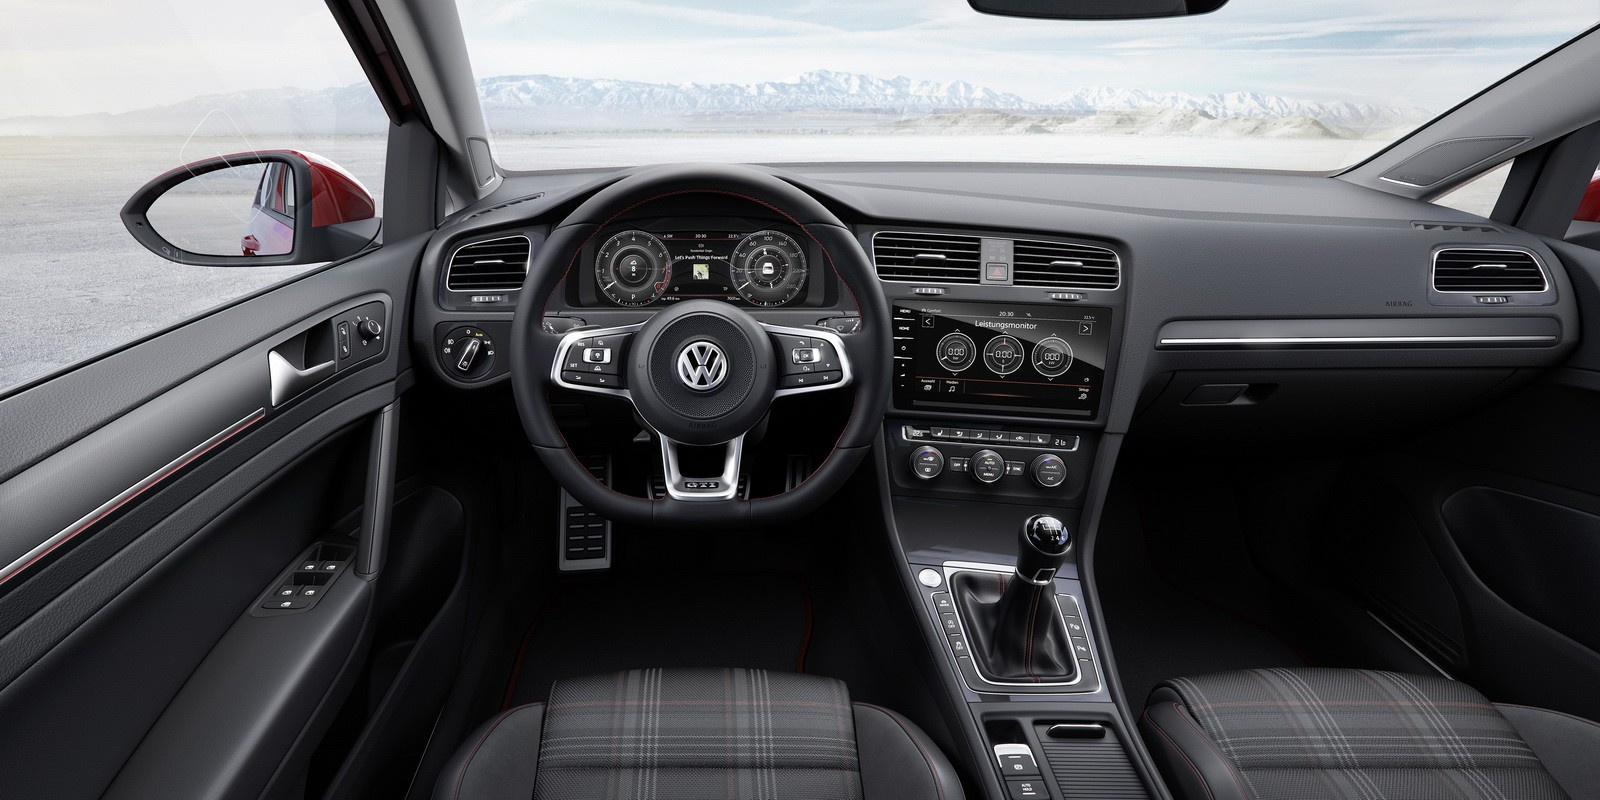 2017 Golf GTI Has 230 HP or 245 HP With Performance Pack